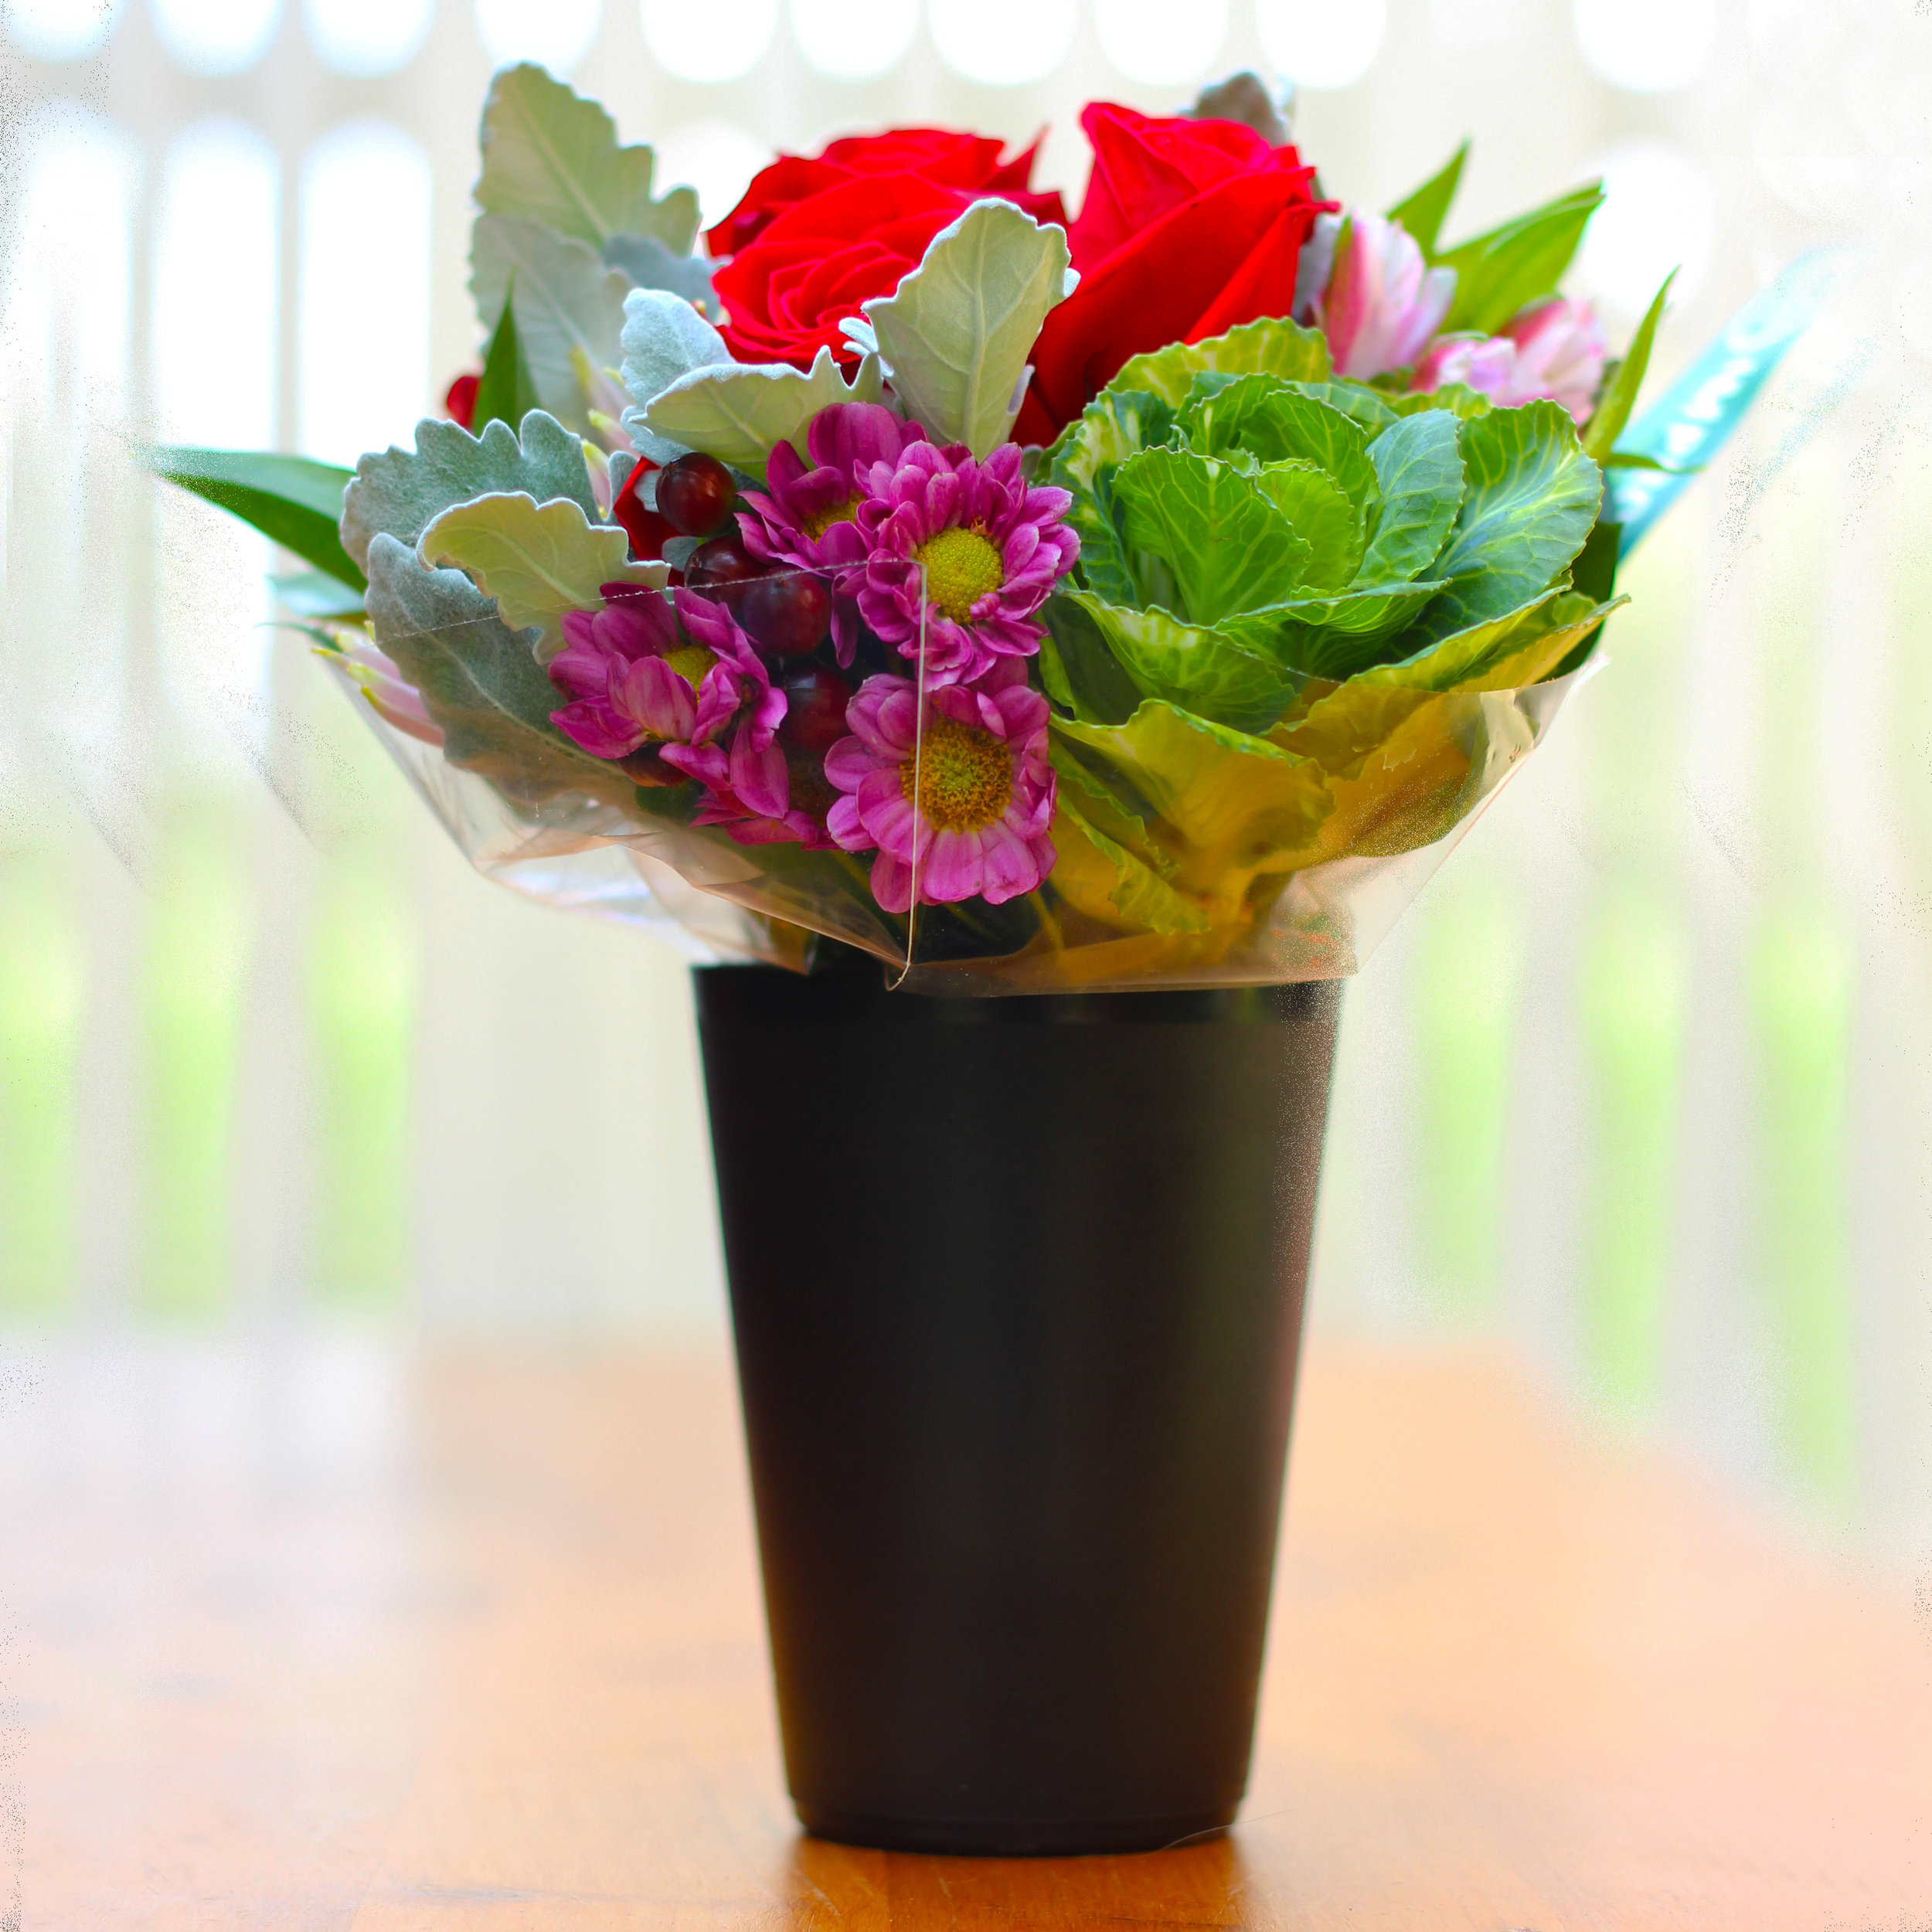 The bouquet comes in a little black platic cup.